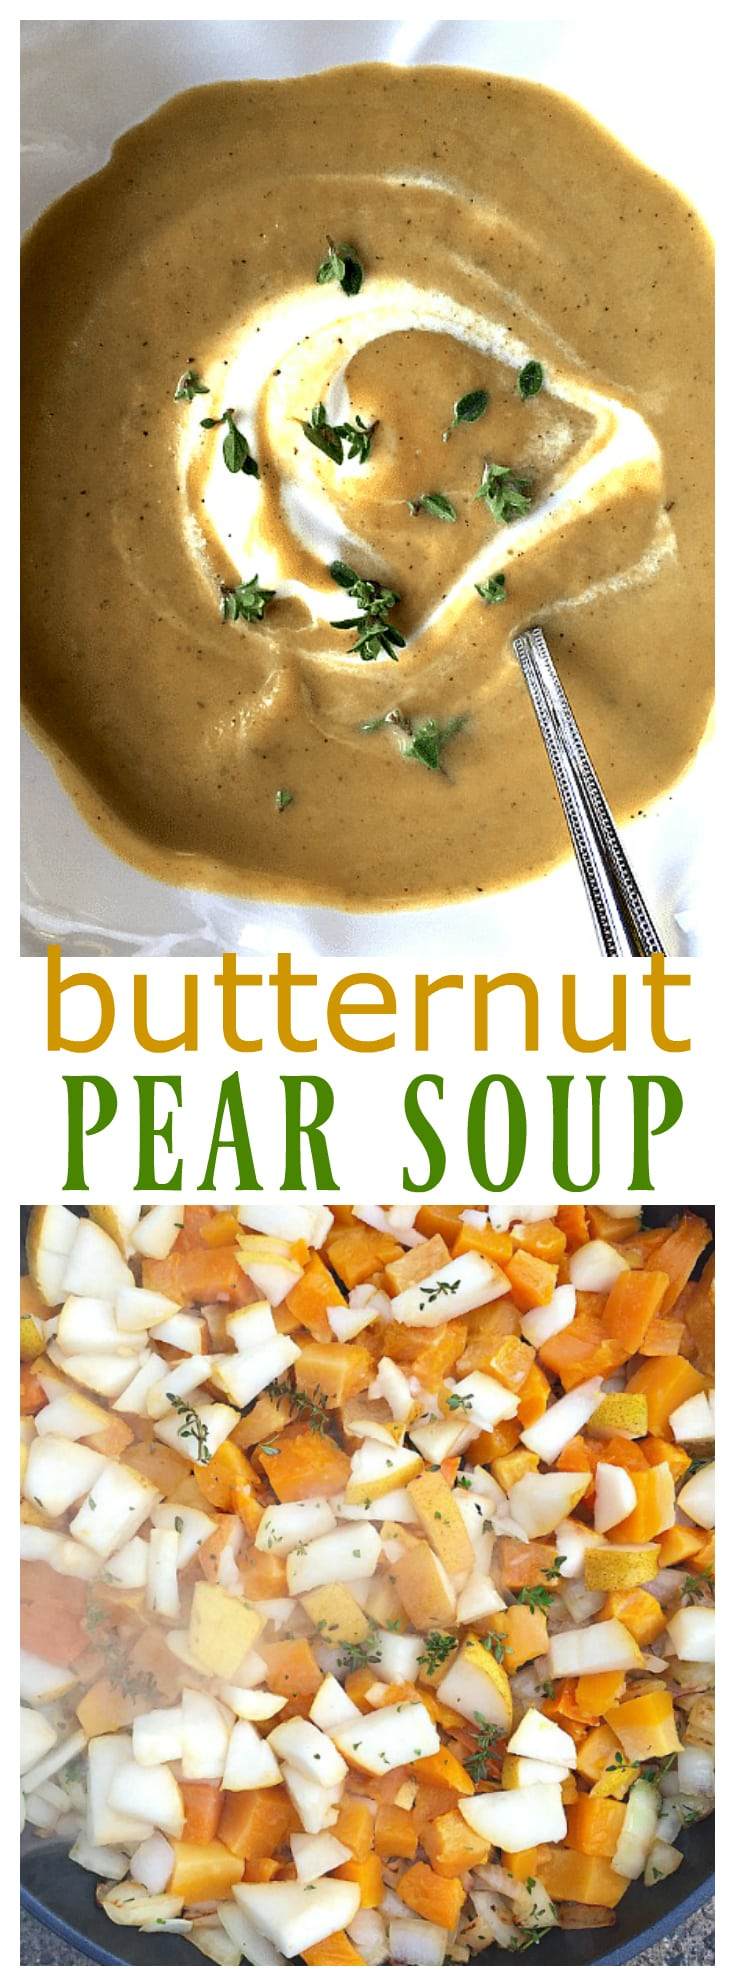 This Butternut Pear Soup recipe is made with pears and butternut squash. The perfect autumn soup to enjoy for a cozy meal!